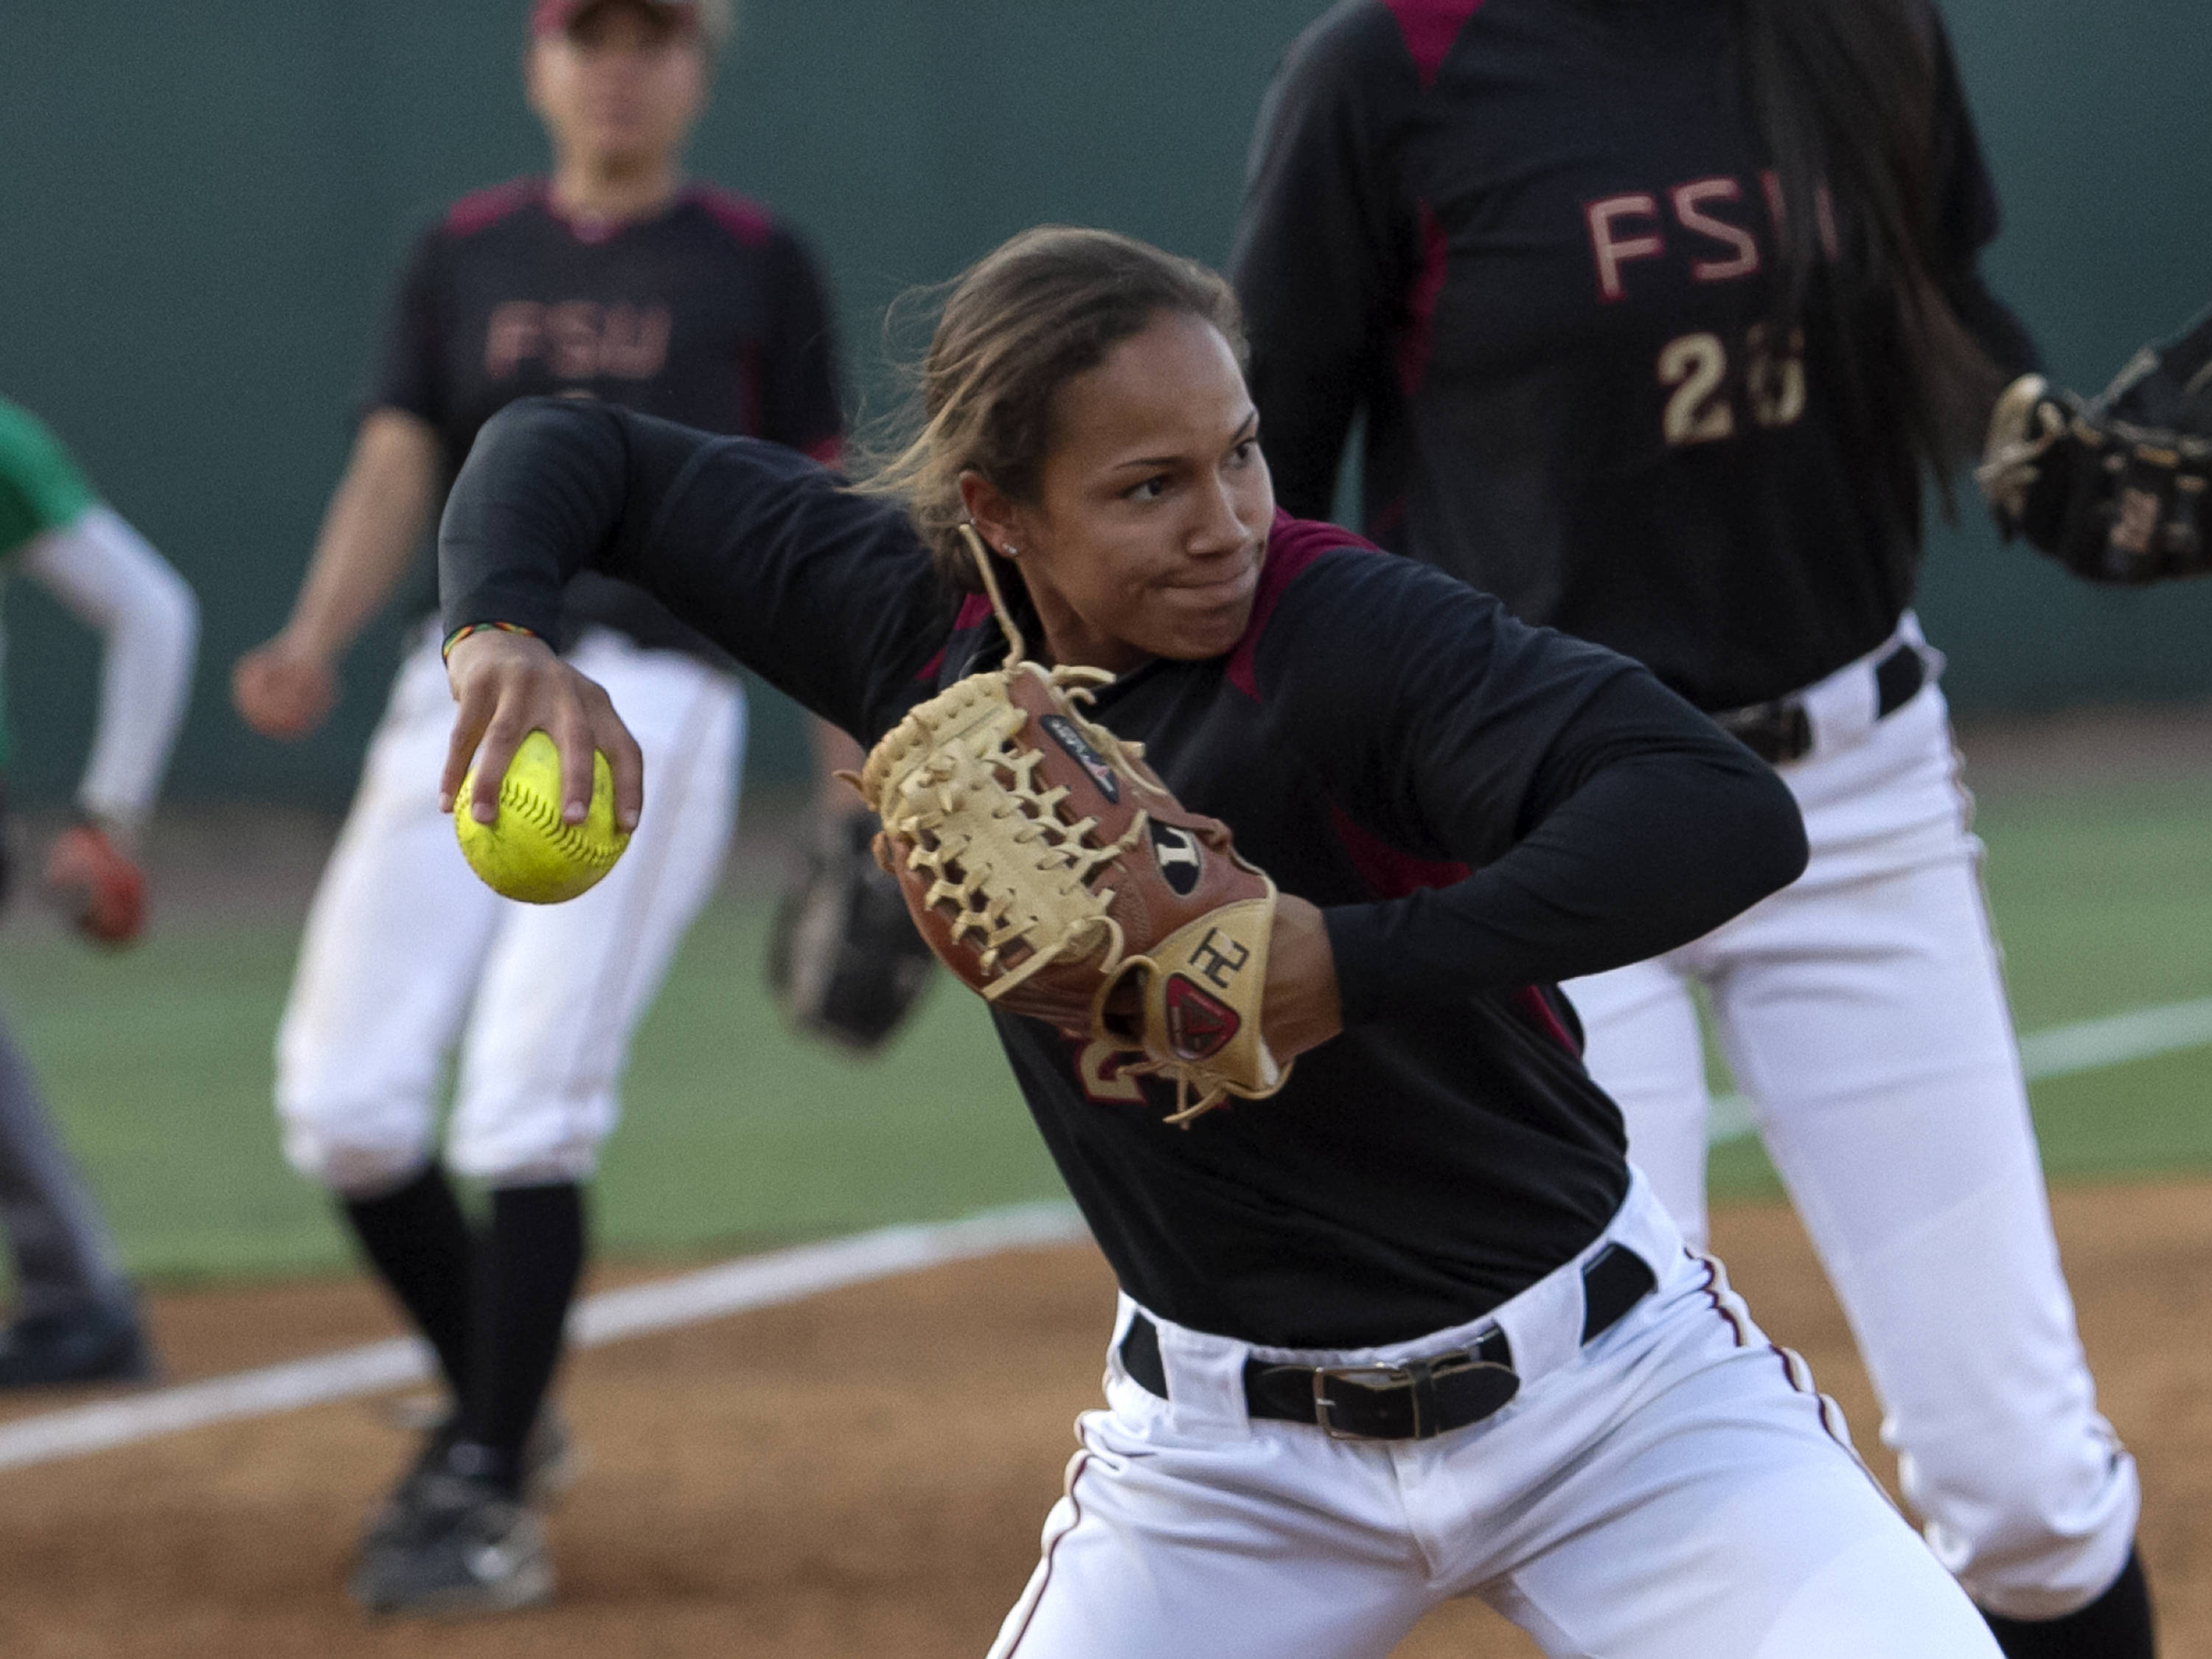 Briana Hamilton, FSU Softball vs FAMU  04/10/2012